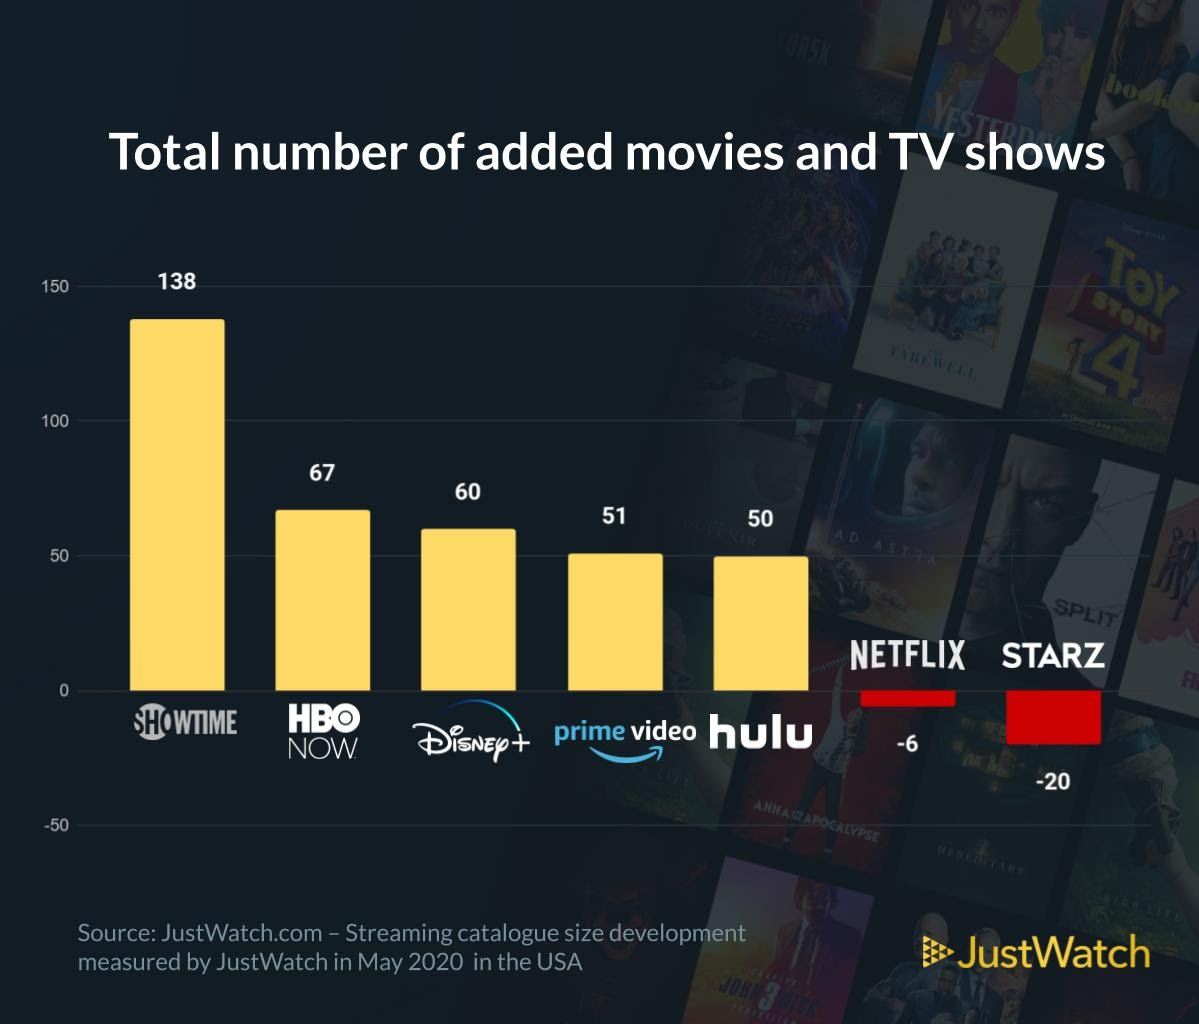 A graph showing the total number of added movies and TV shows in the US Market with data from JustWatch